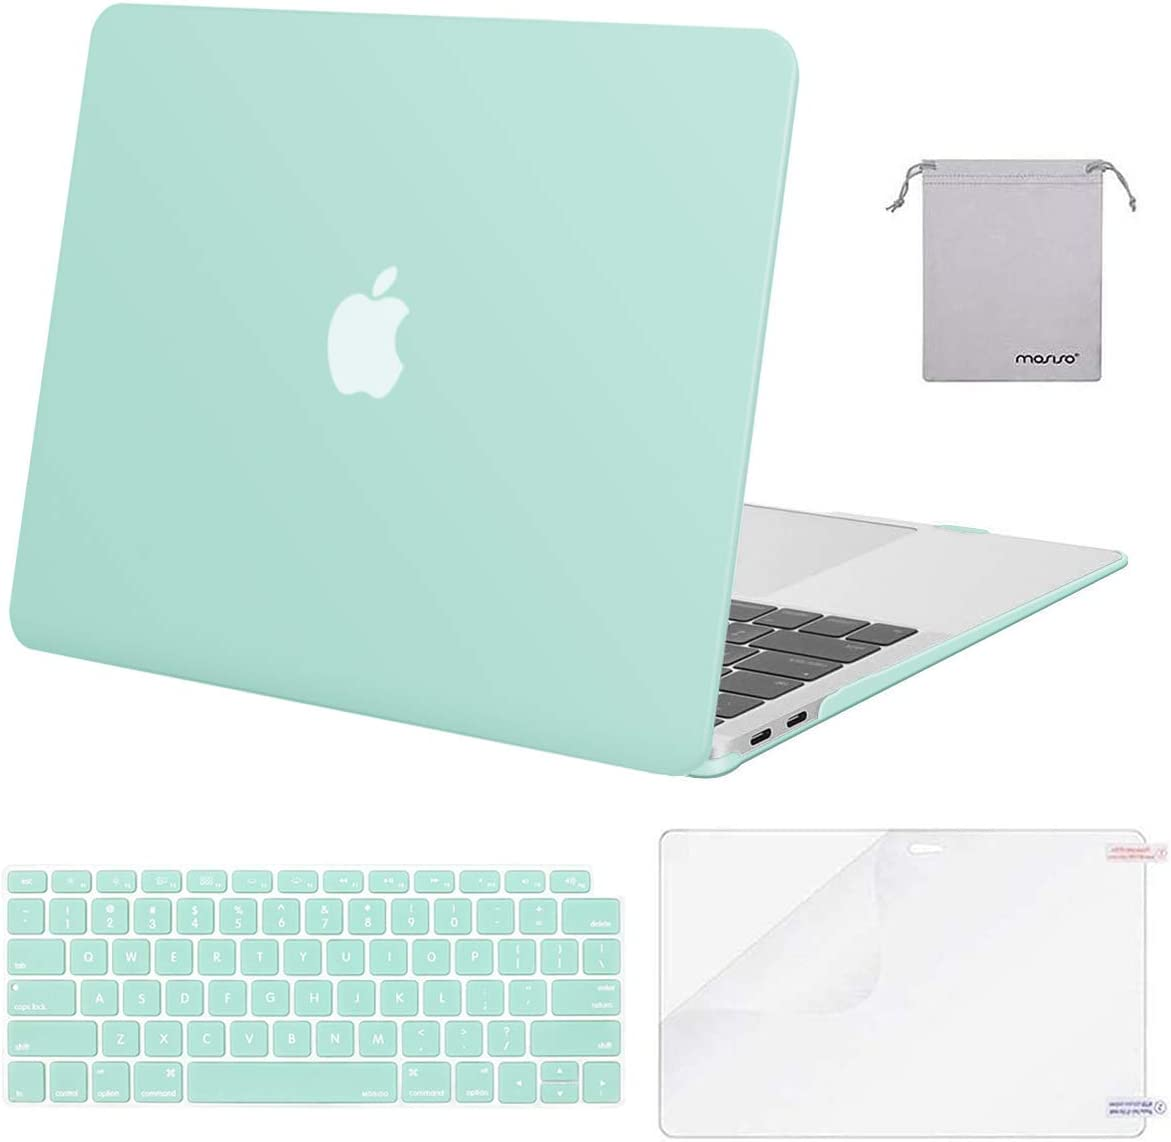 MOSISO MacBook Air 13 inch Case 2020 2019 2018 Release A2179 A1932 with Retina Display, Plastic Hard Shell&Keyboard Cover&Screen Protector&Storage Bag Compatible with MacBook Air 13, Mint Green